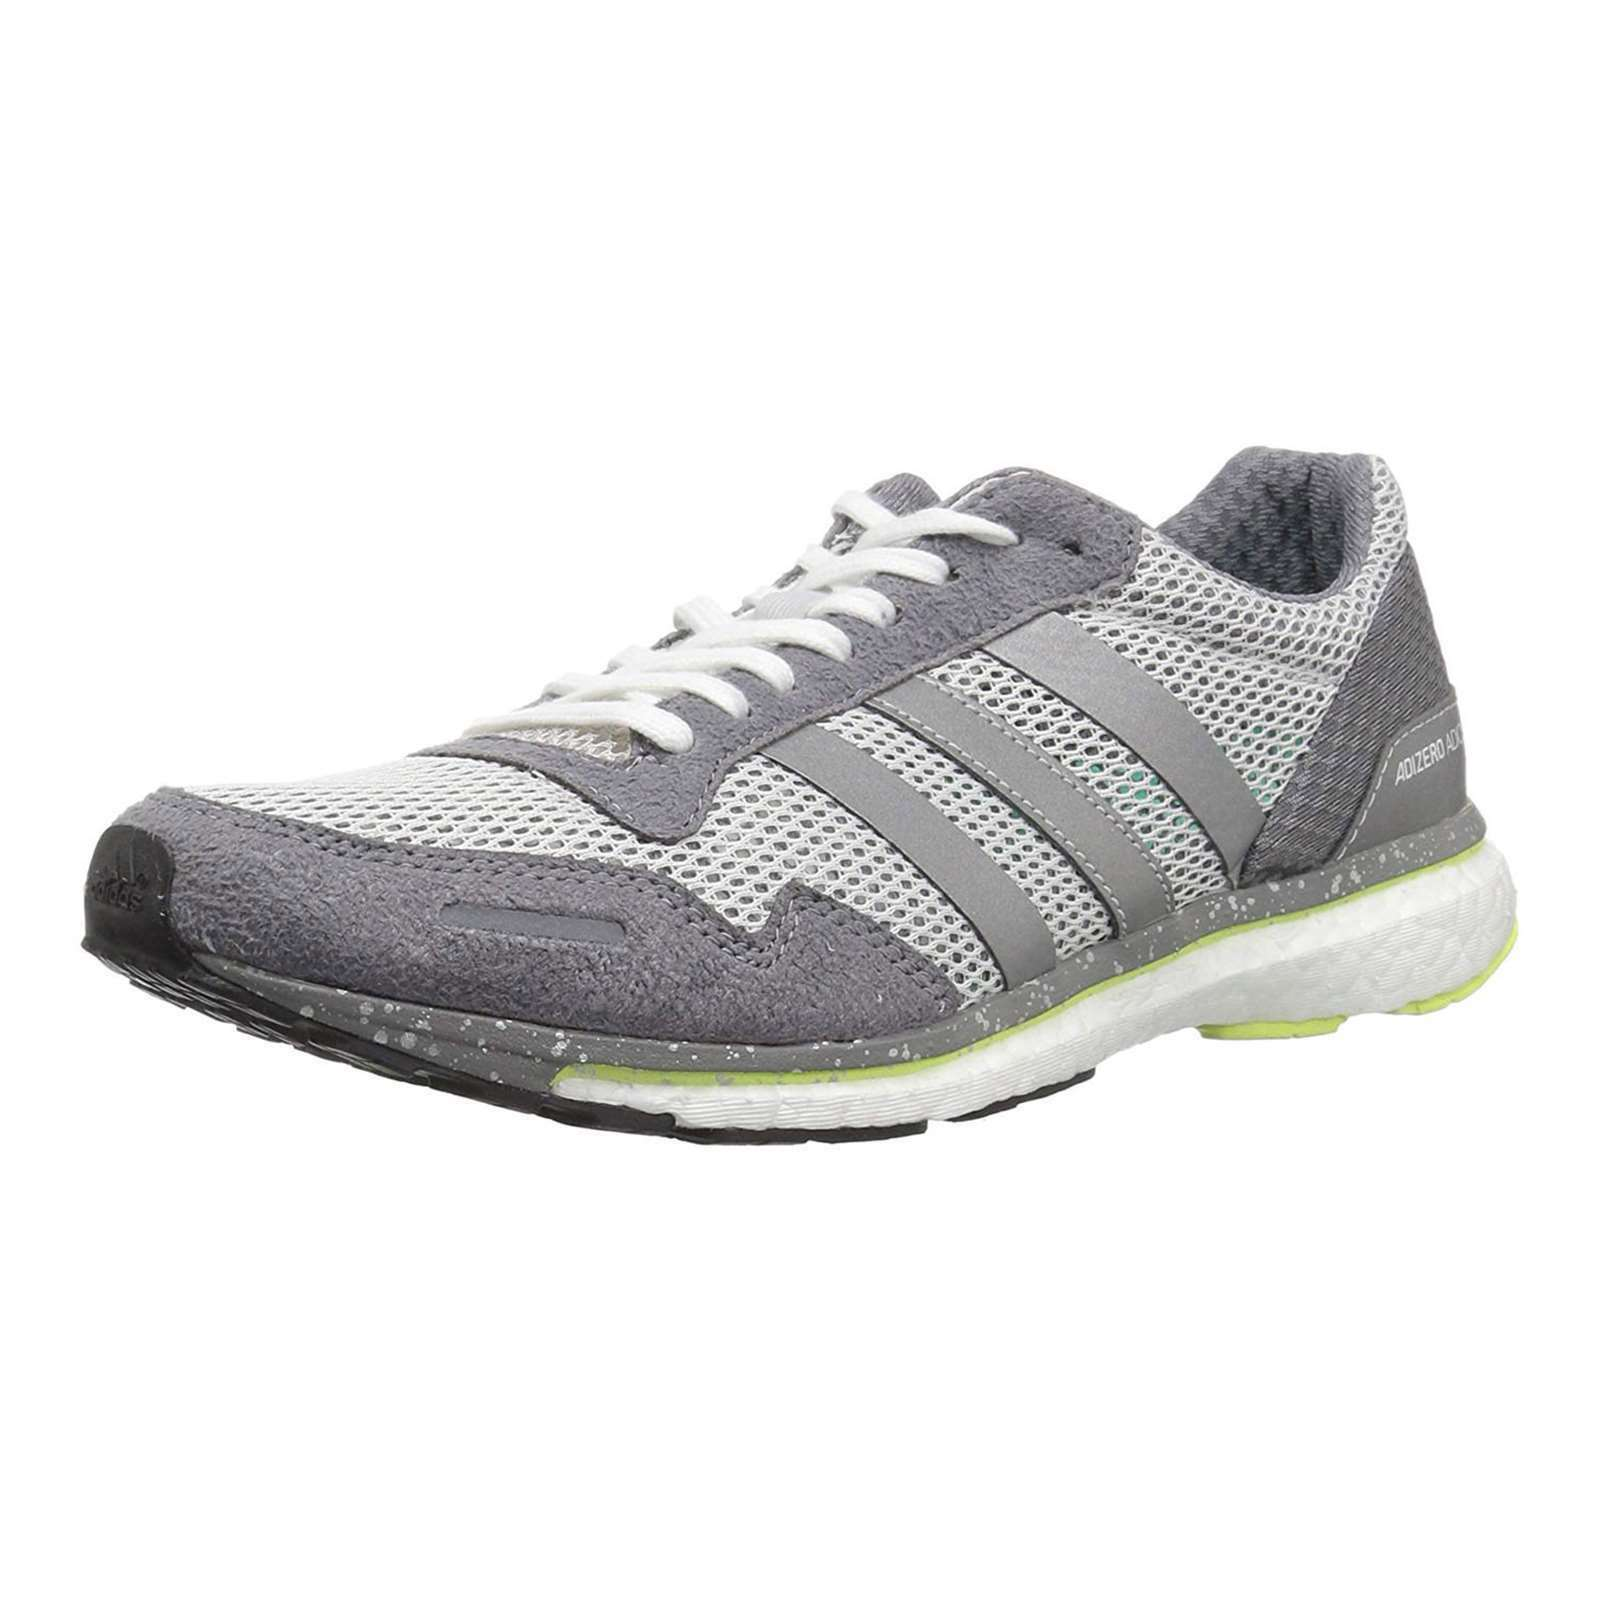 Women Adidas Adizero Adios Grey Running Shoes Womens Sneakers BB6410 NEW